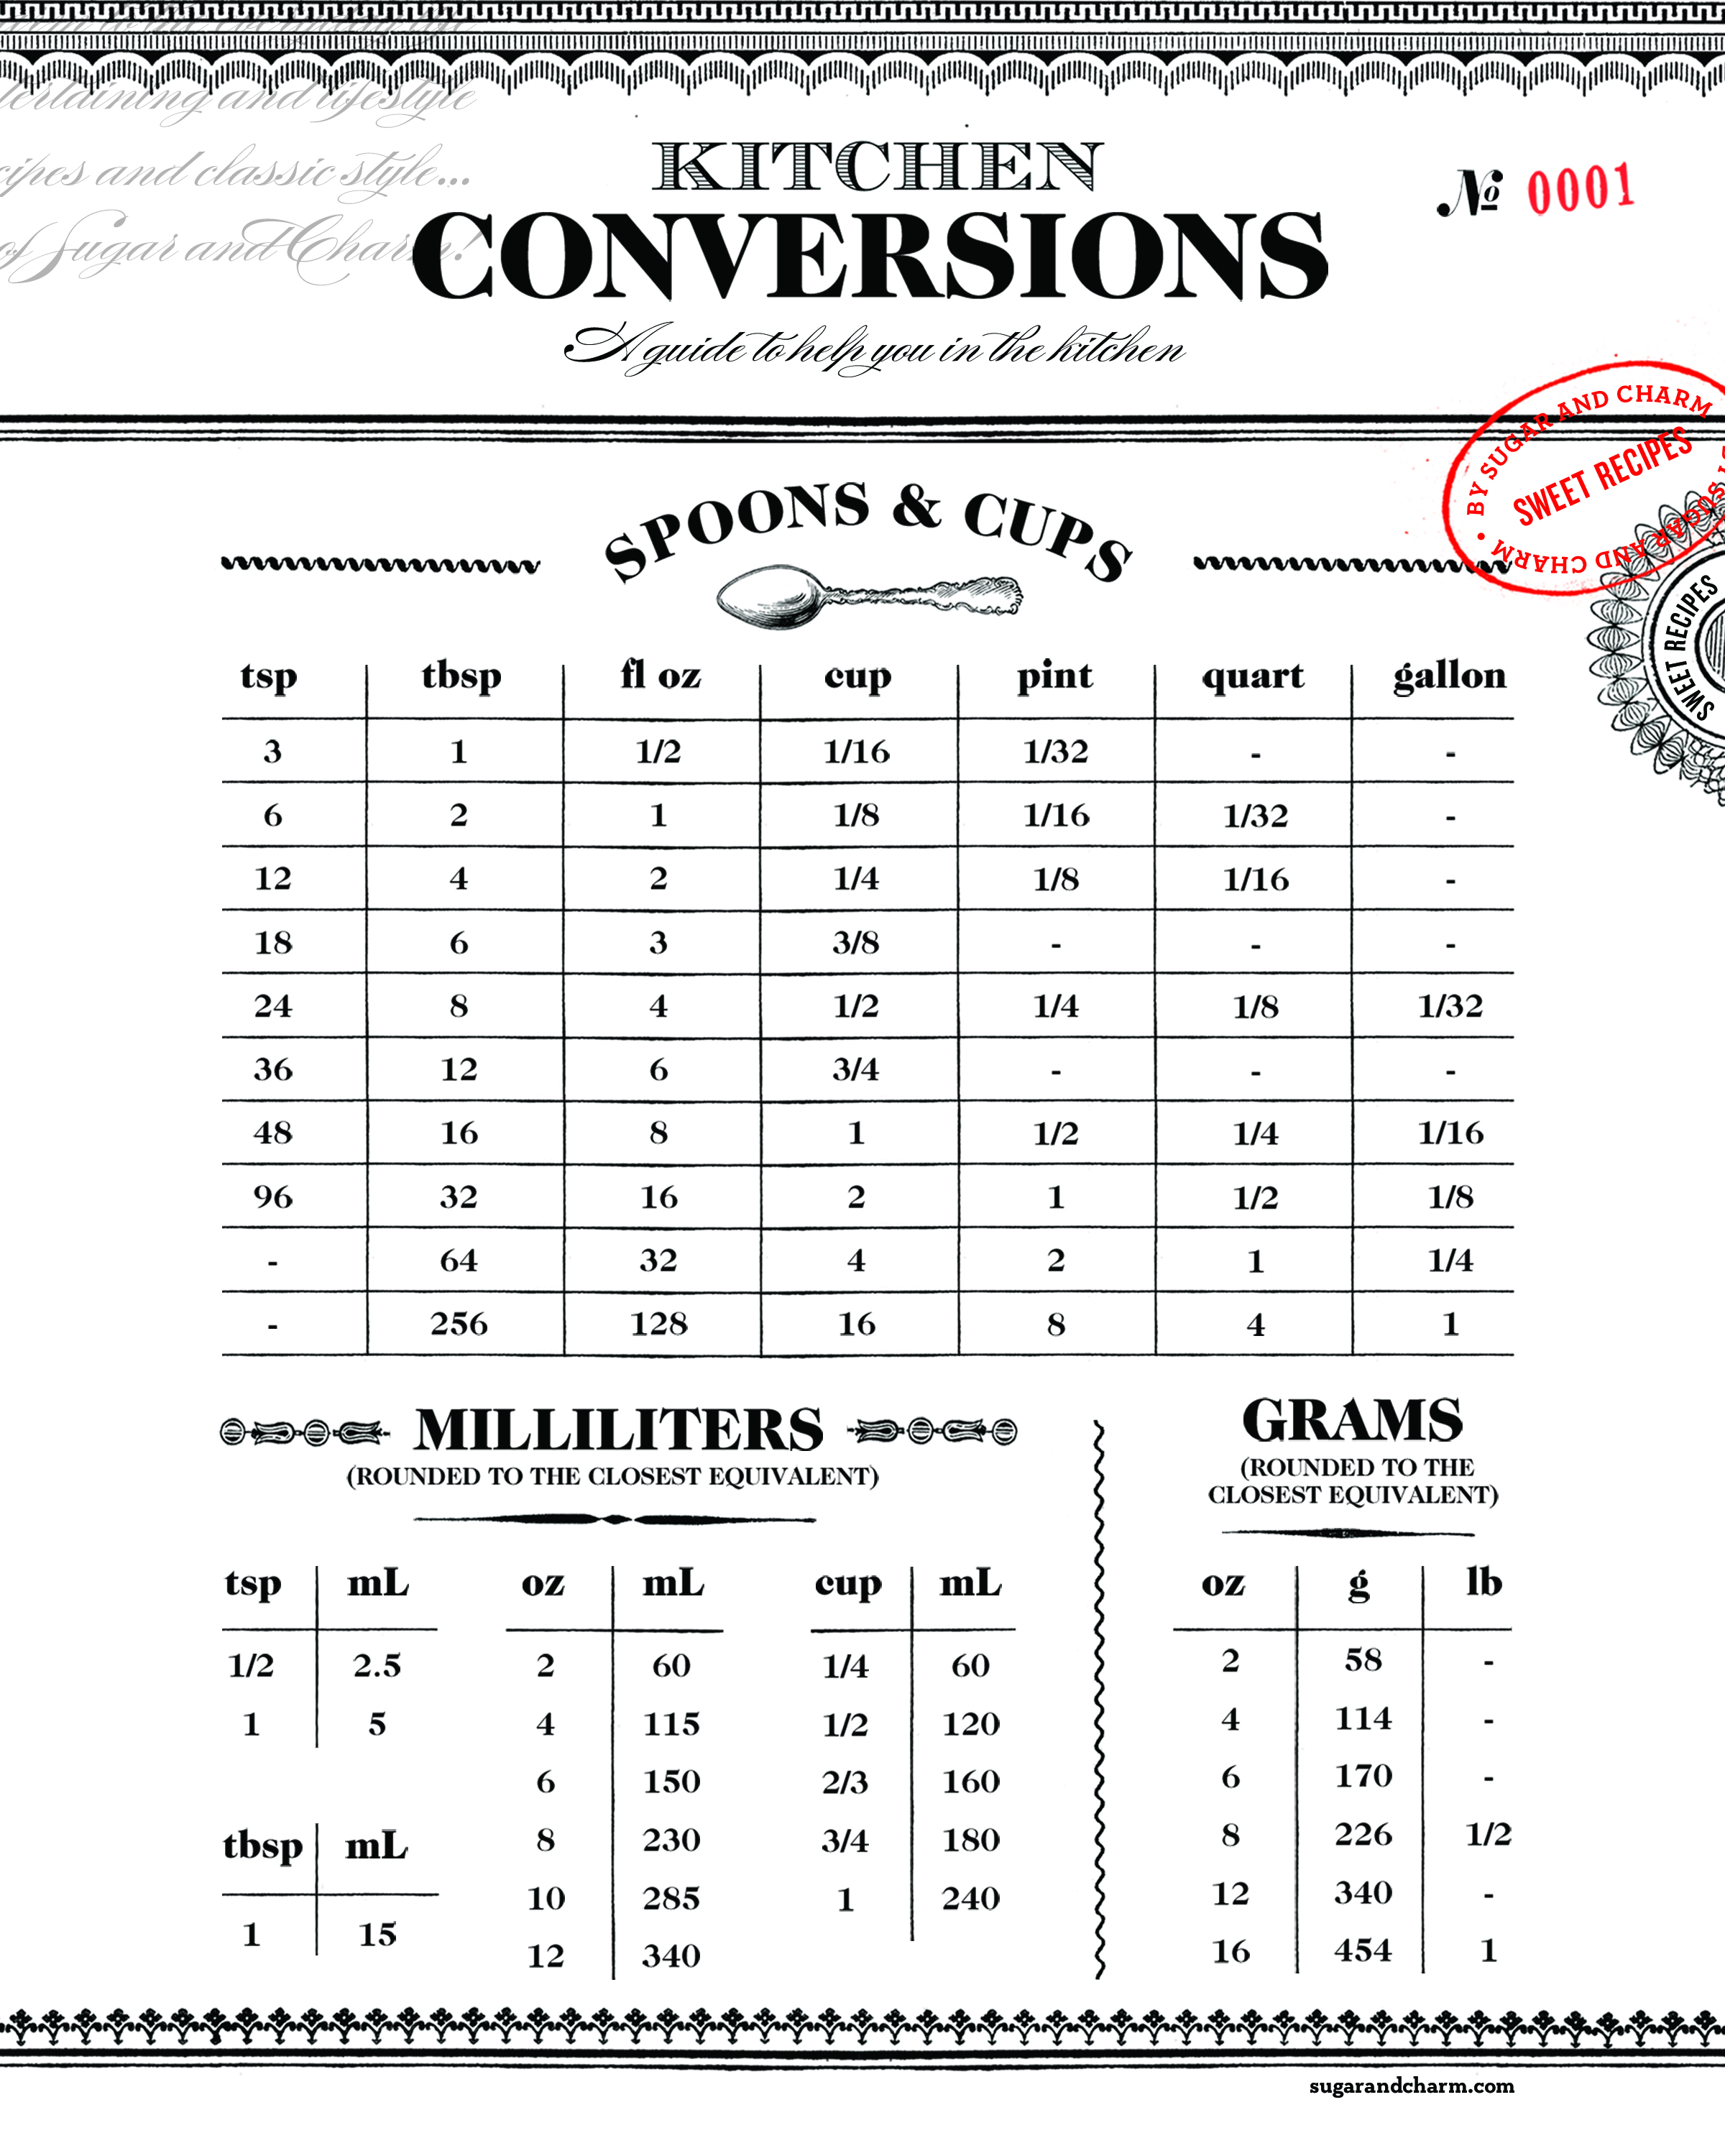 science conversion chart Olala.propx.co